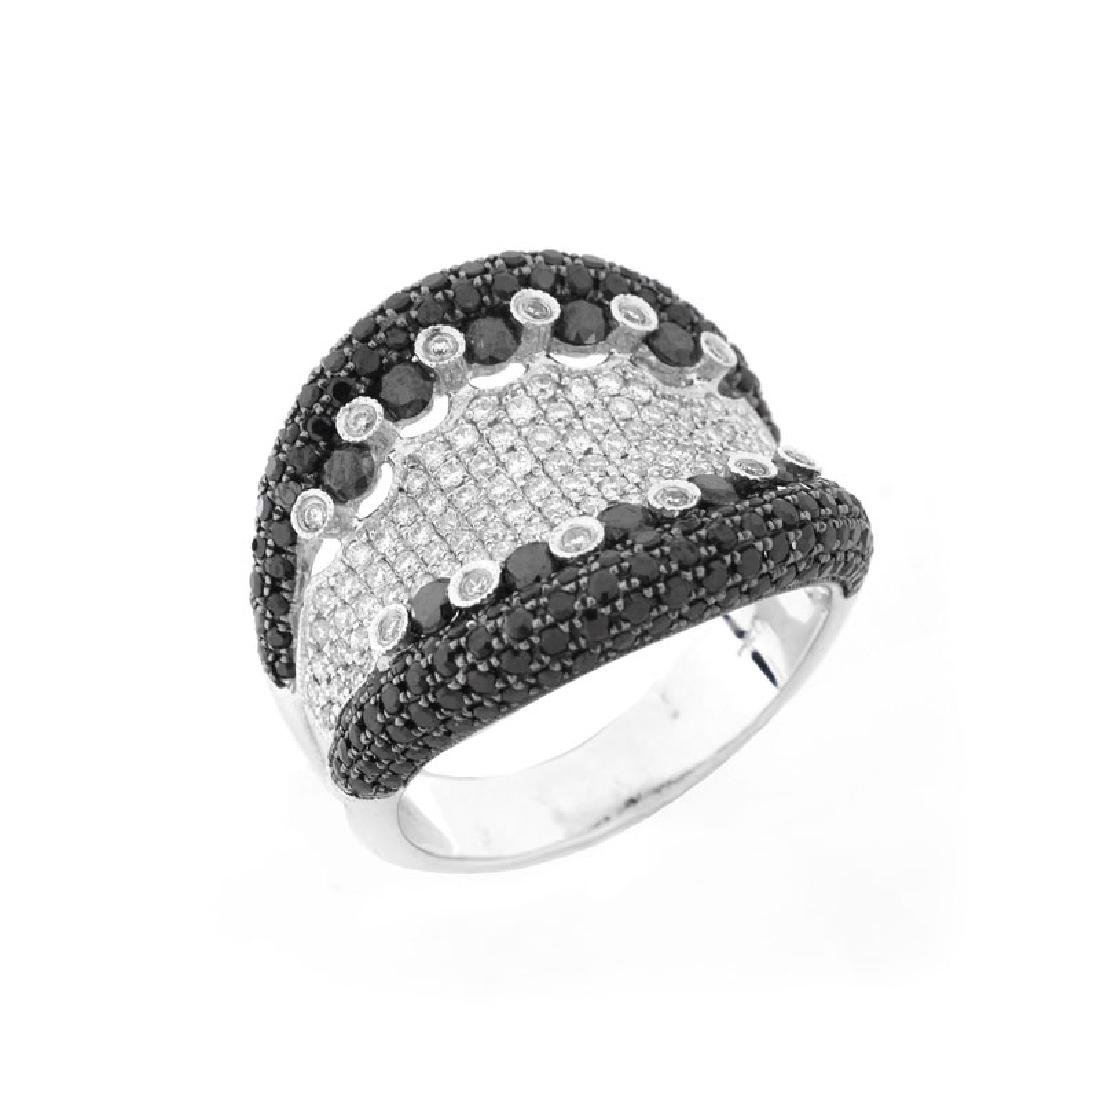 Contemporary Approx. 3.15 Carat Pave Set Black Diamond,